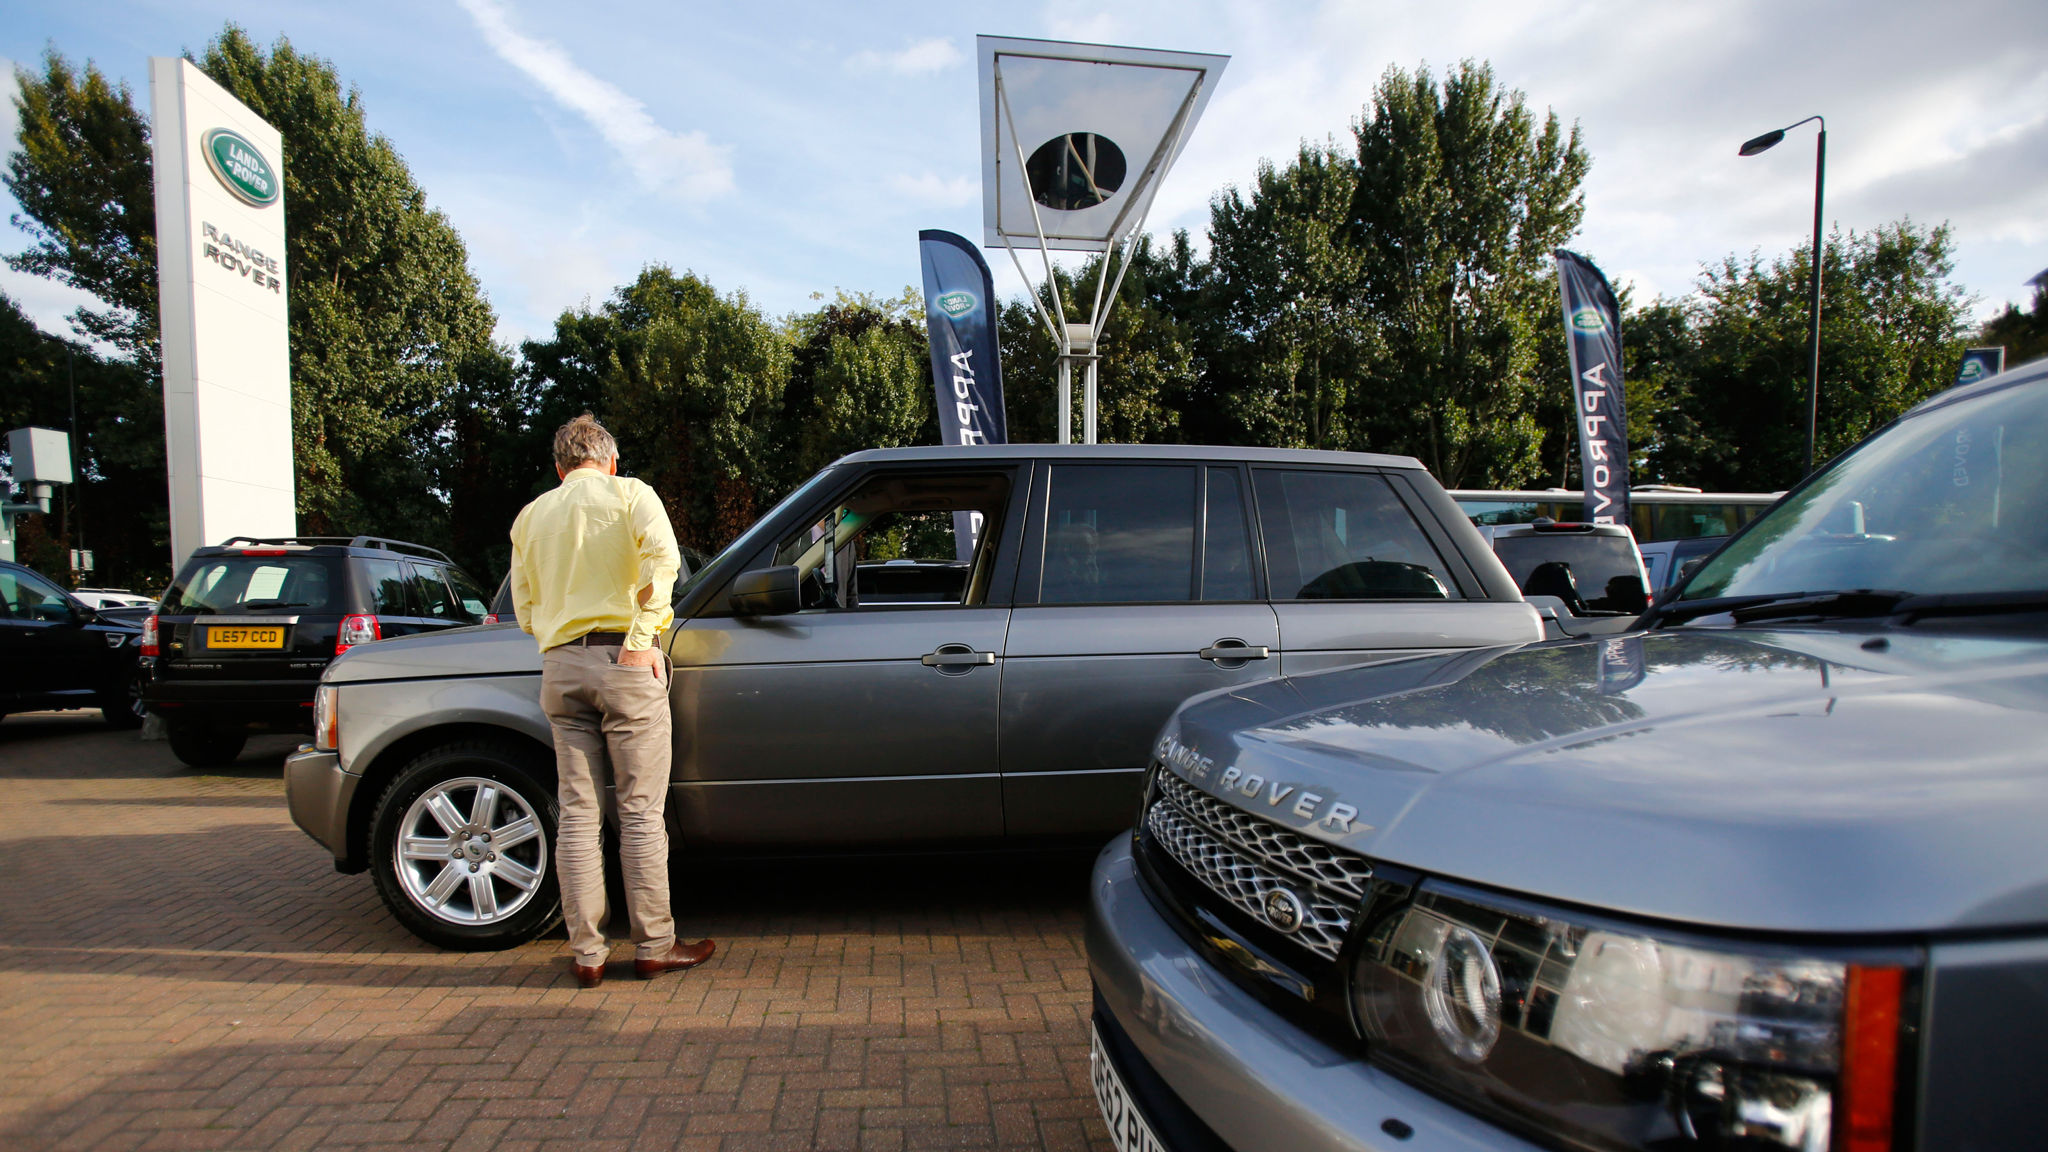 Car dealership Lookers warns on profits | Financial Times